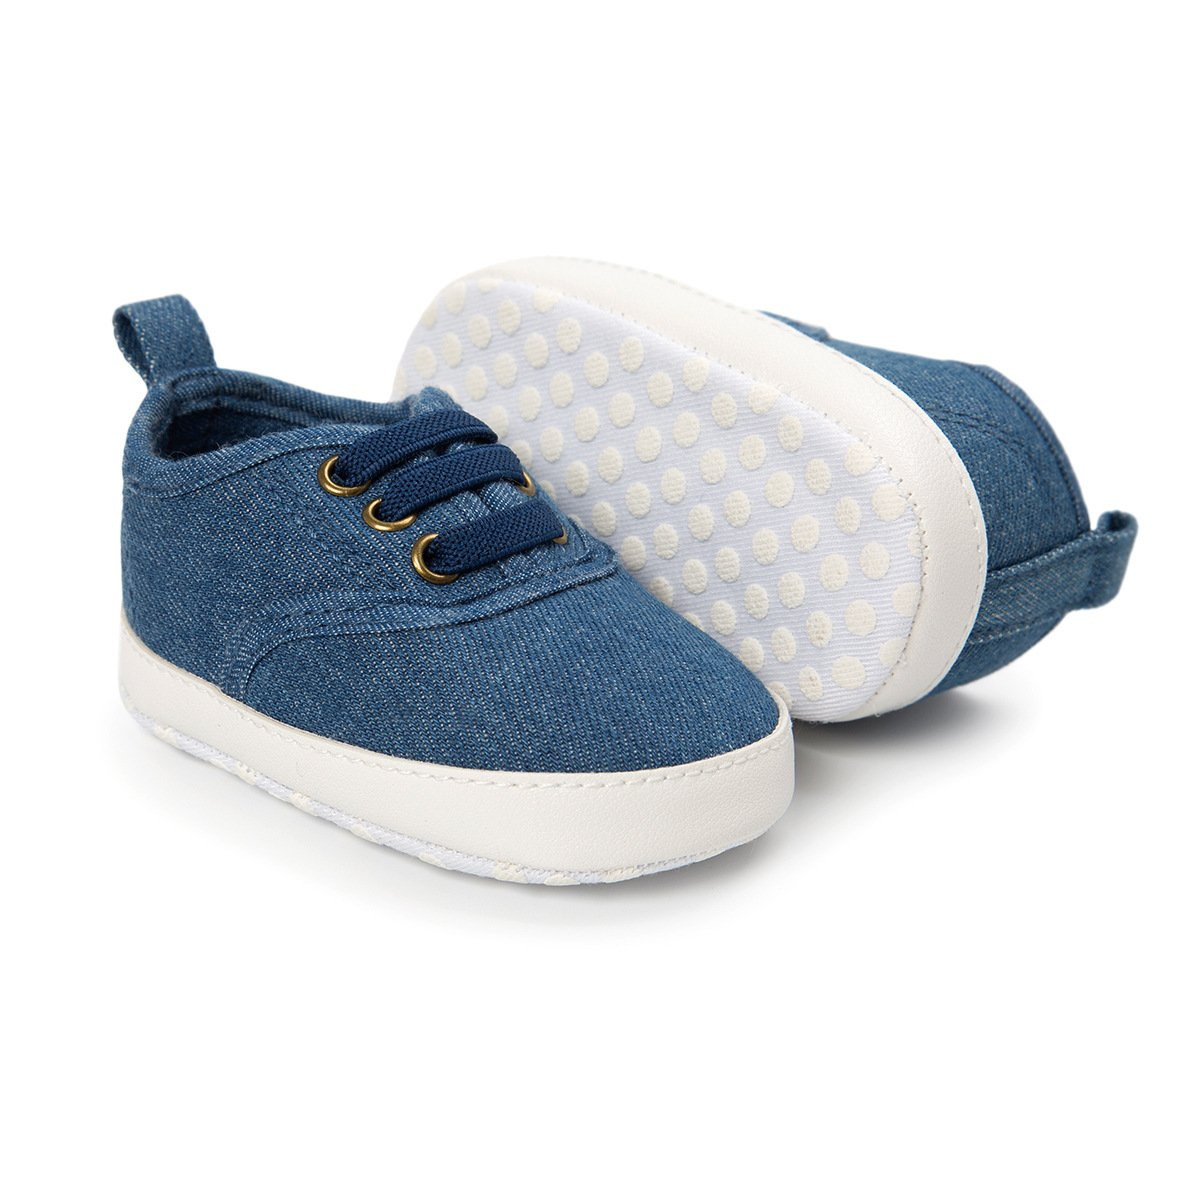 Benhero Baby Boys 19975 Girls Canvas Toddler Sneaker Colors Shoes 12 Jeans Girl Wortham Labs Investment